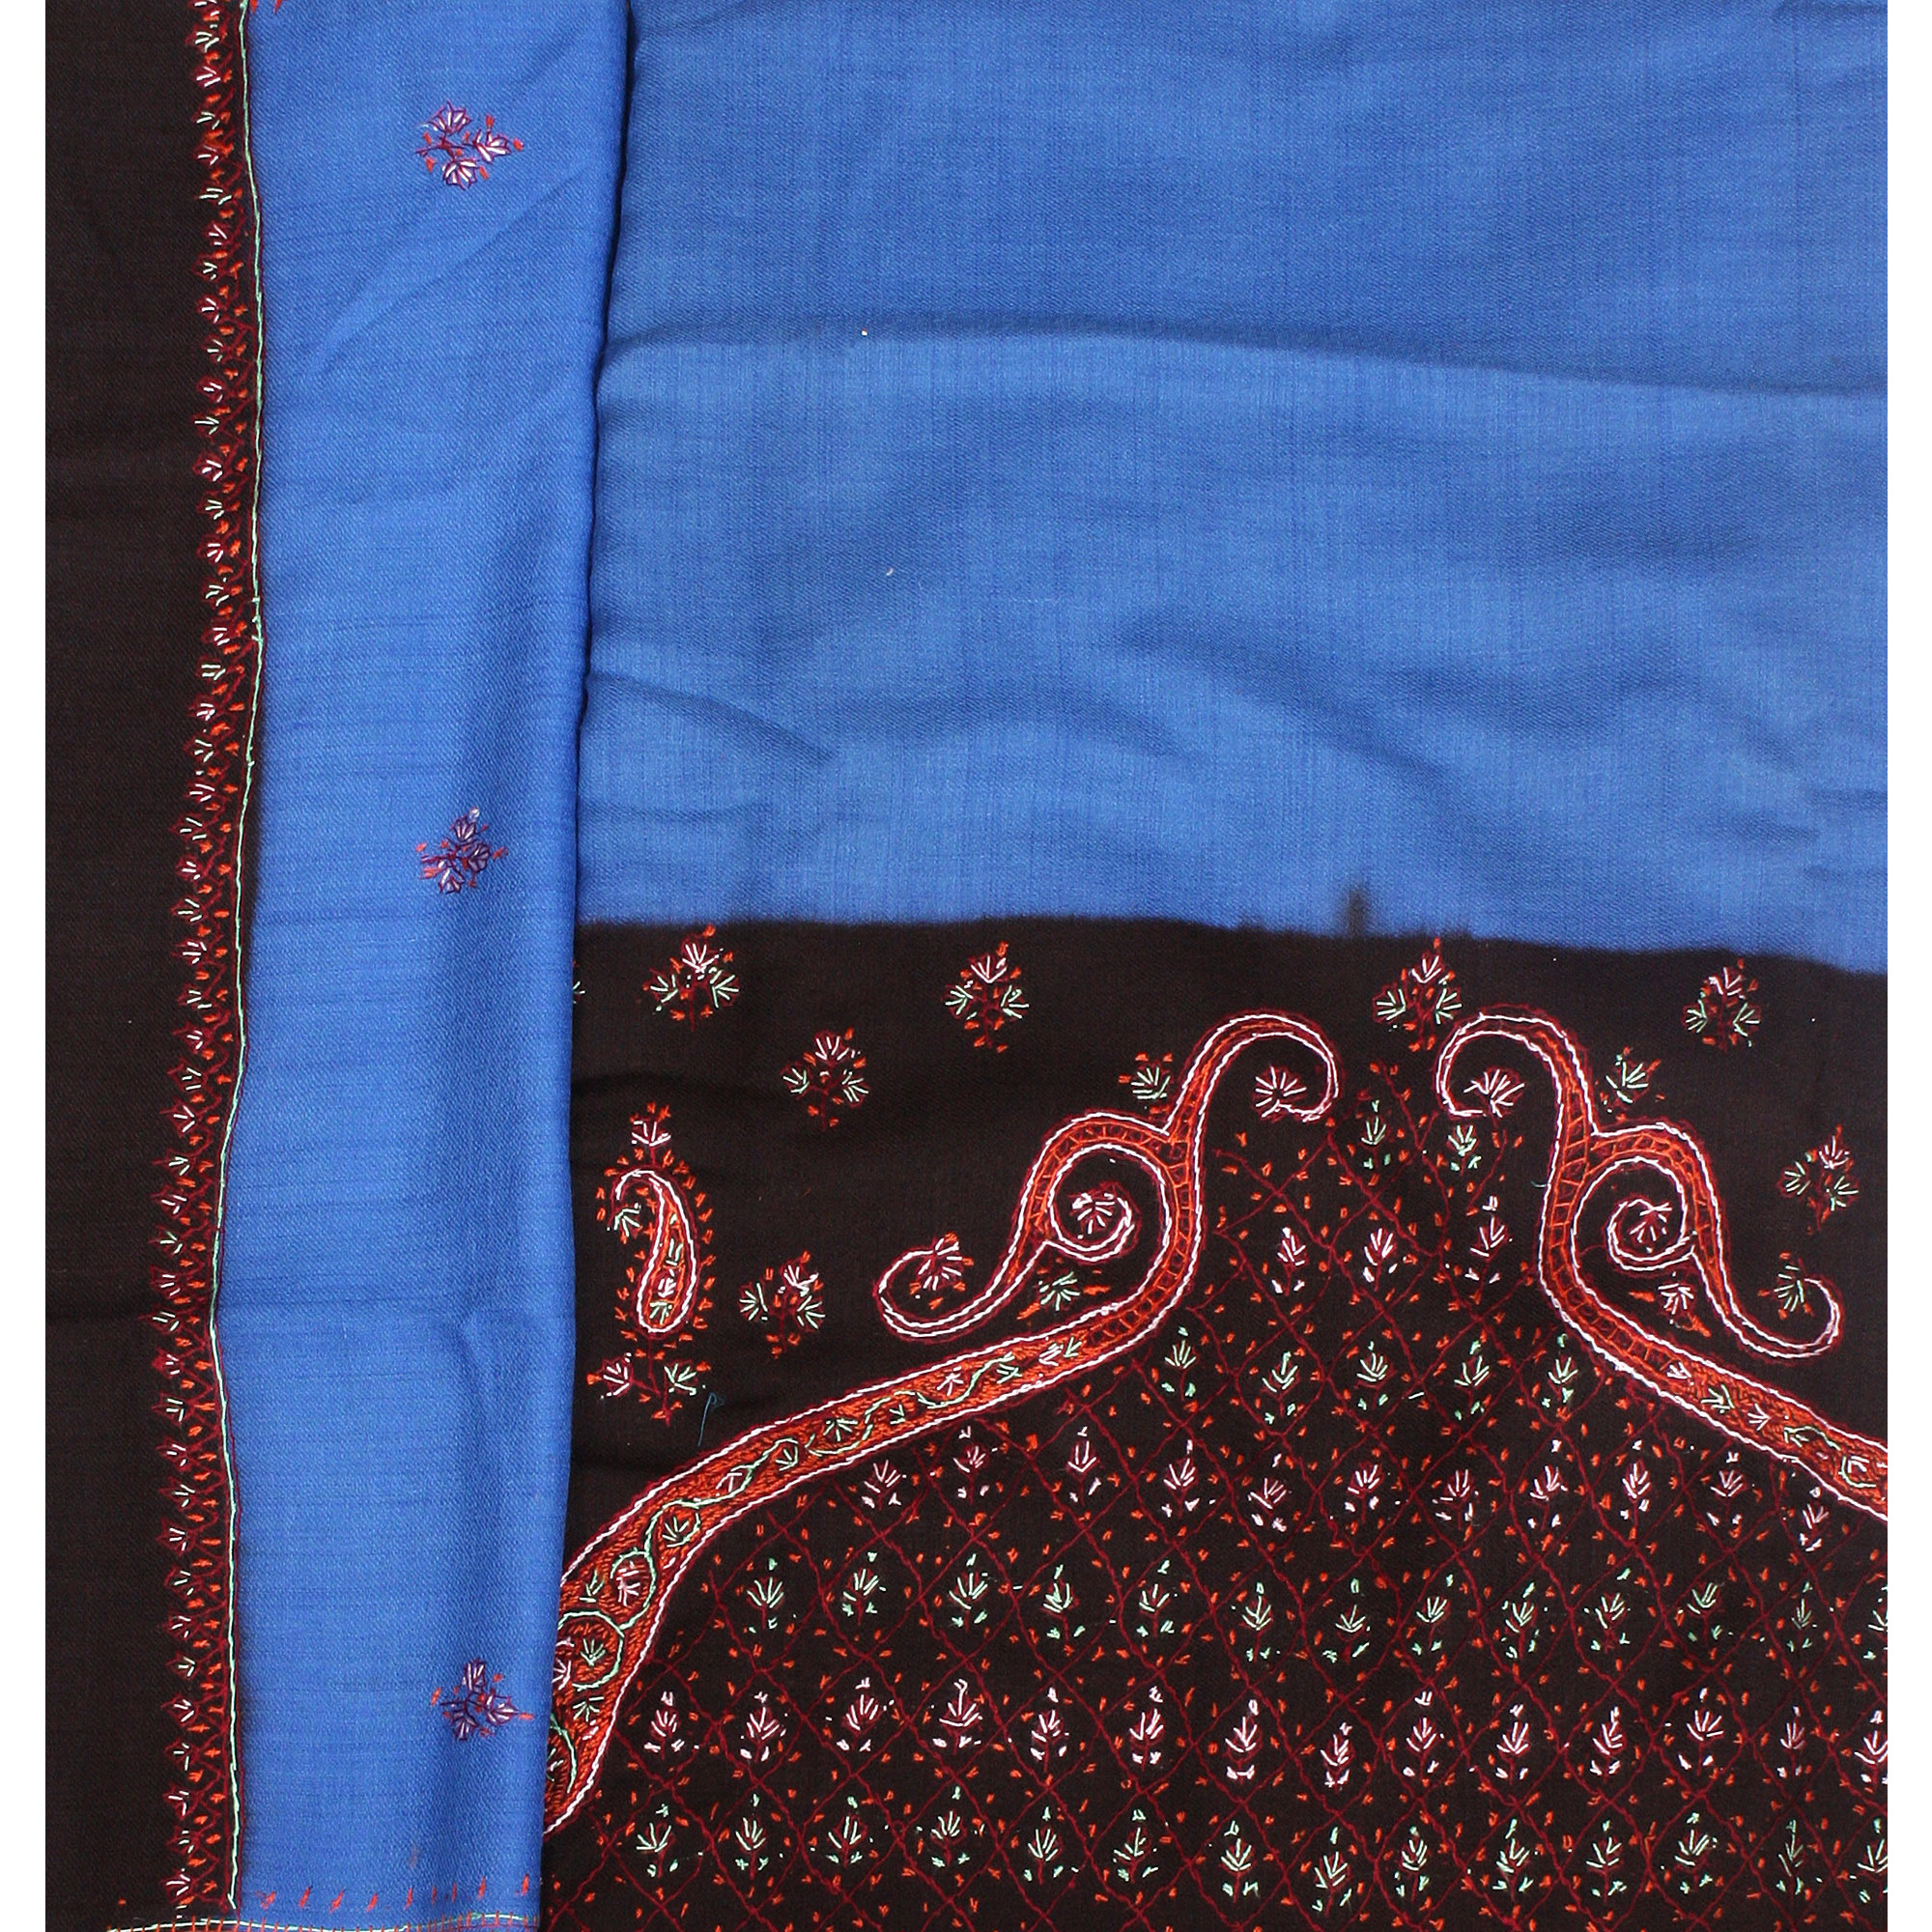 Blue and Black Salwar Kameez Fabric from Kashmir with Sozni Embroidery by Hand